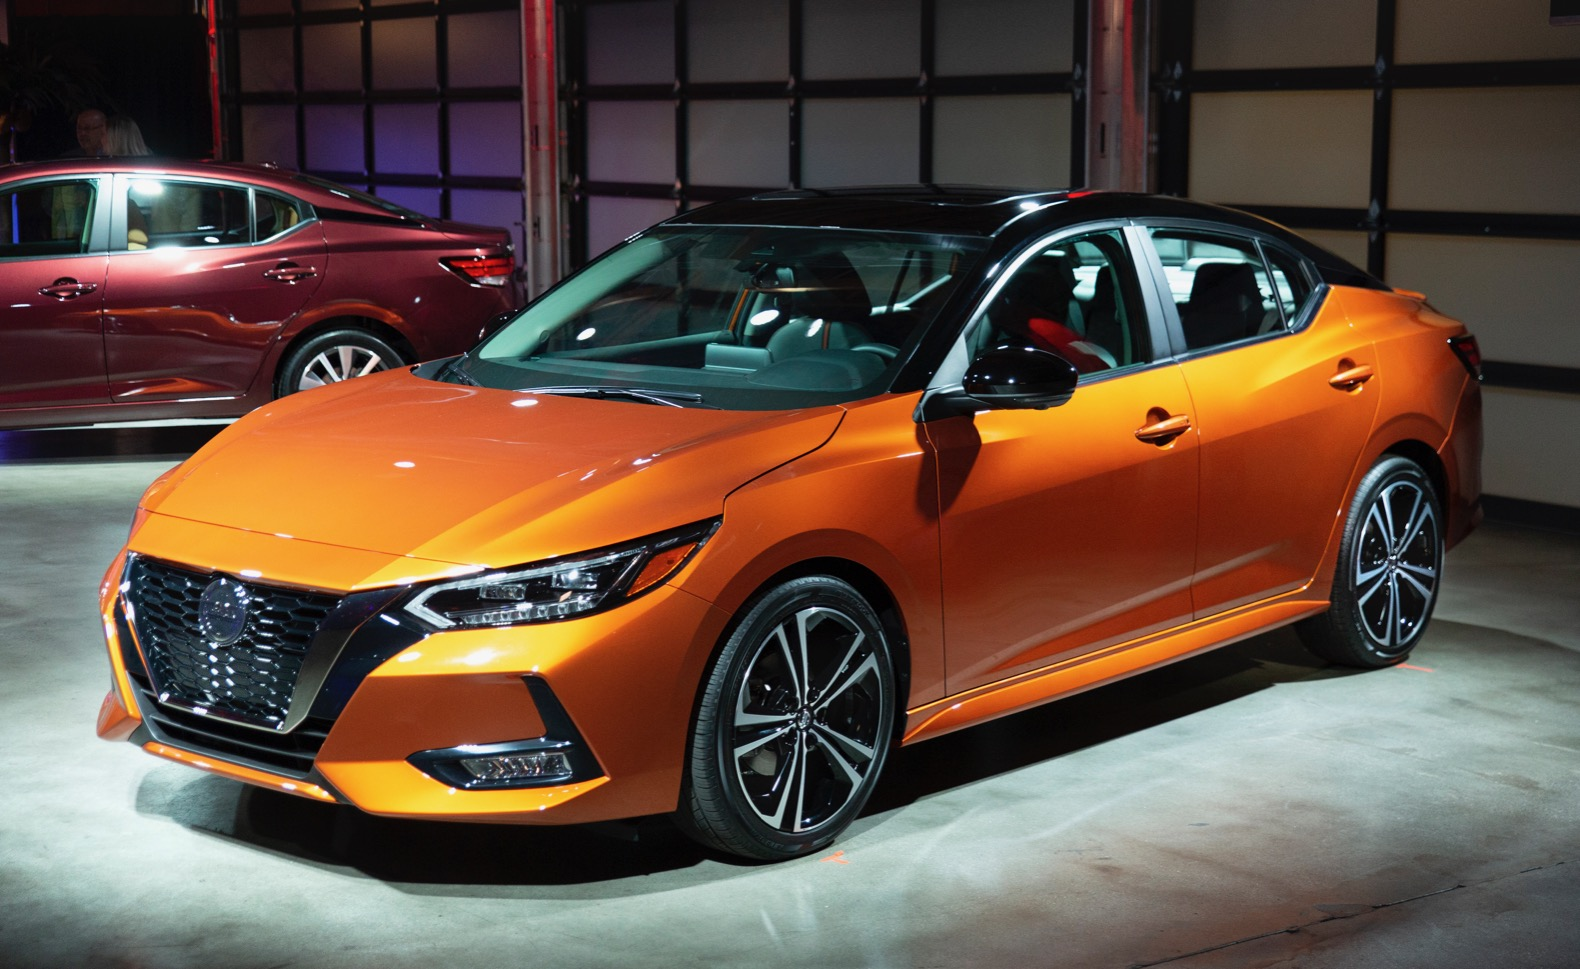 2020 Nissan Sentra starts at $20,015 | The Torque Report